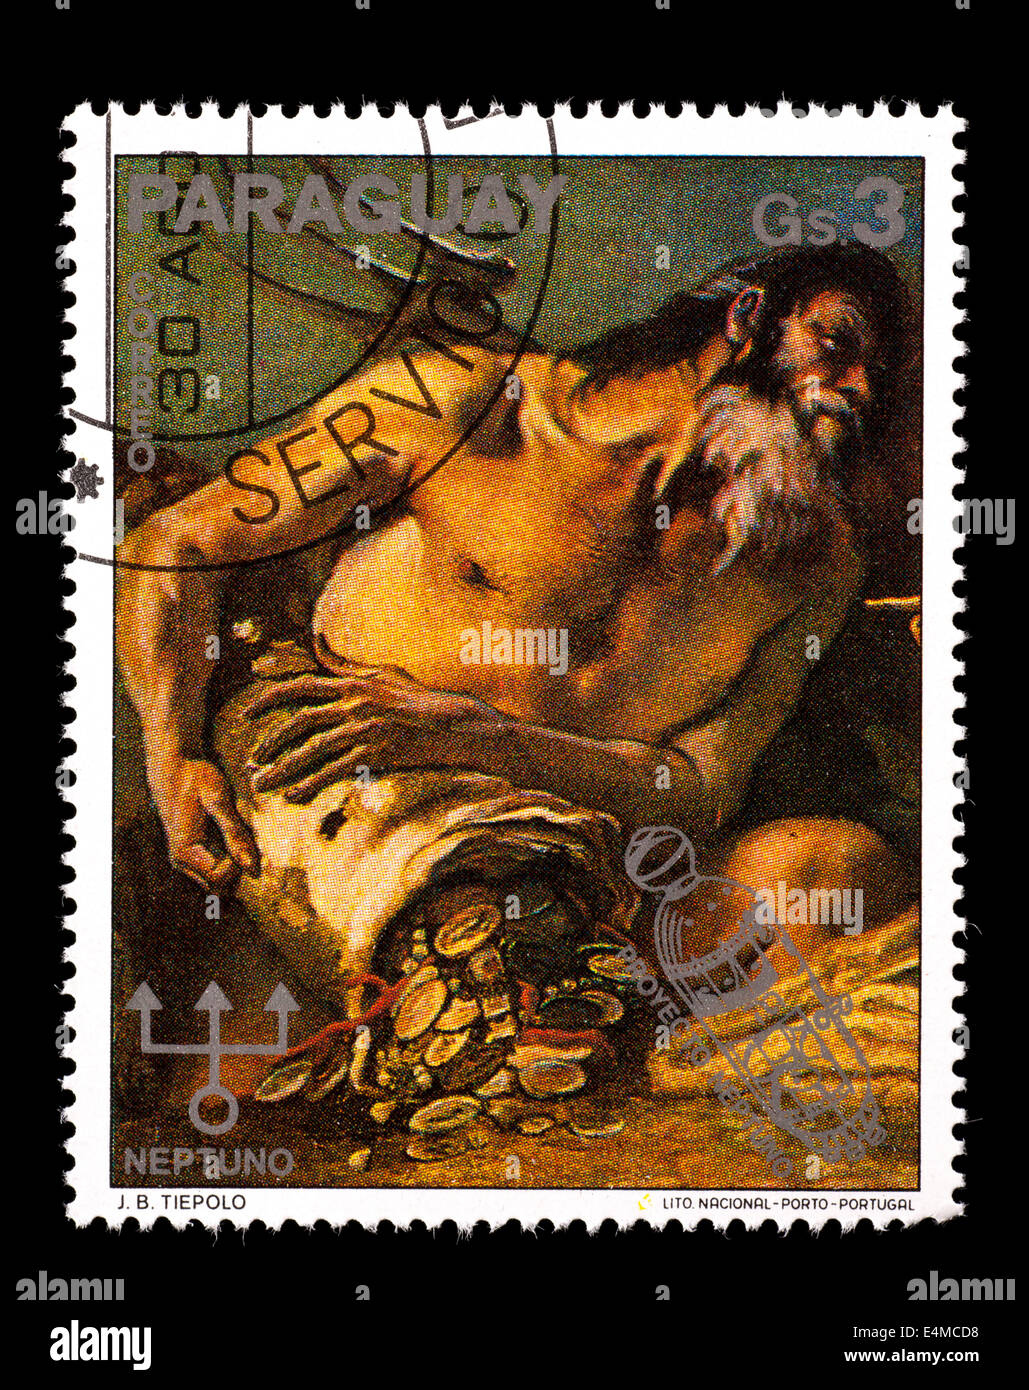 Postage Stamp From Paraguay Depicting Neptune Detail A J B Tiepolo Painting